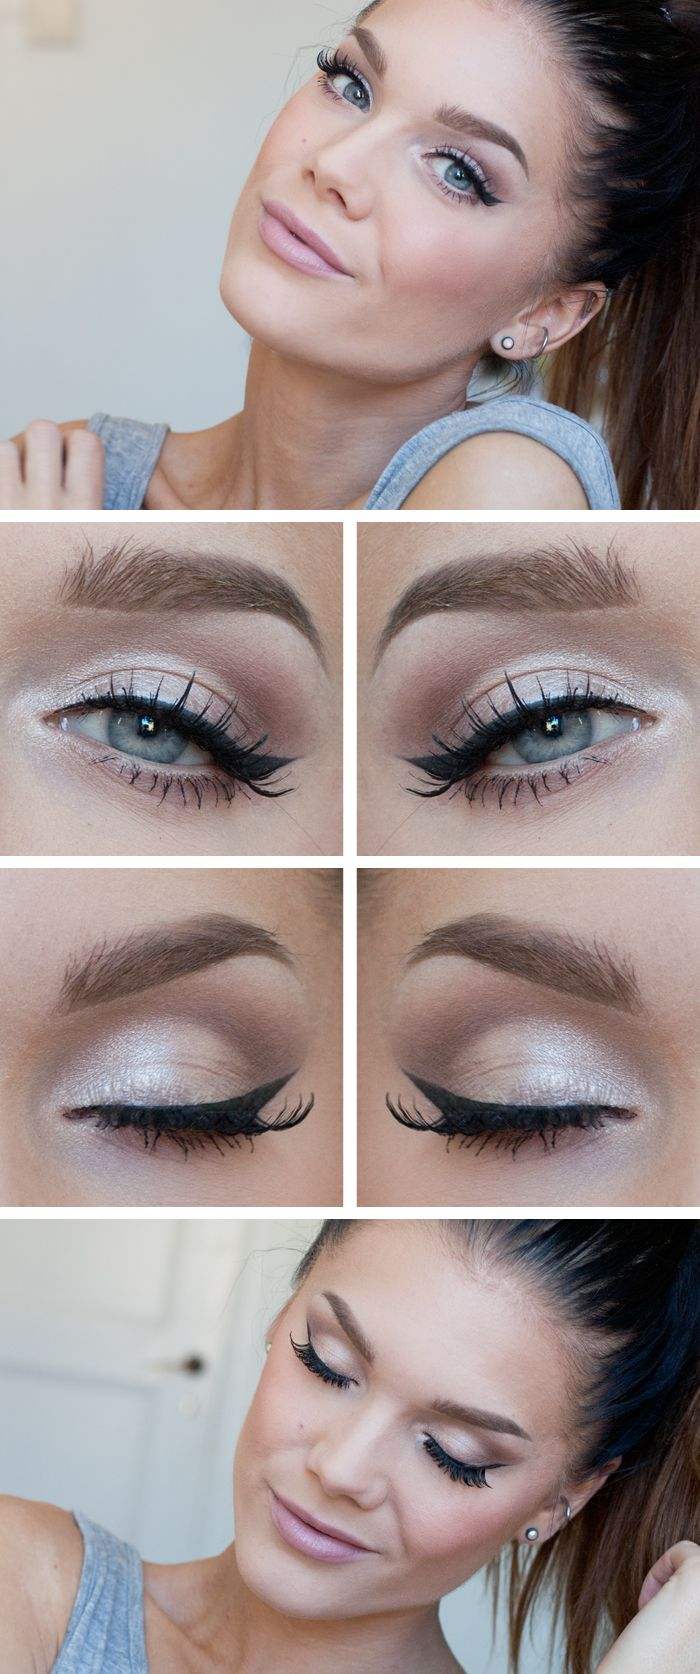 Simple Yet Stylish Light Makeup Ideas To Try For Daily